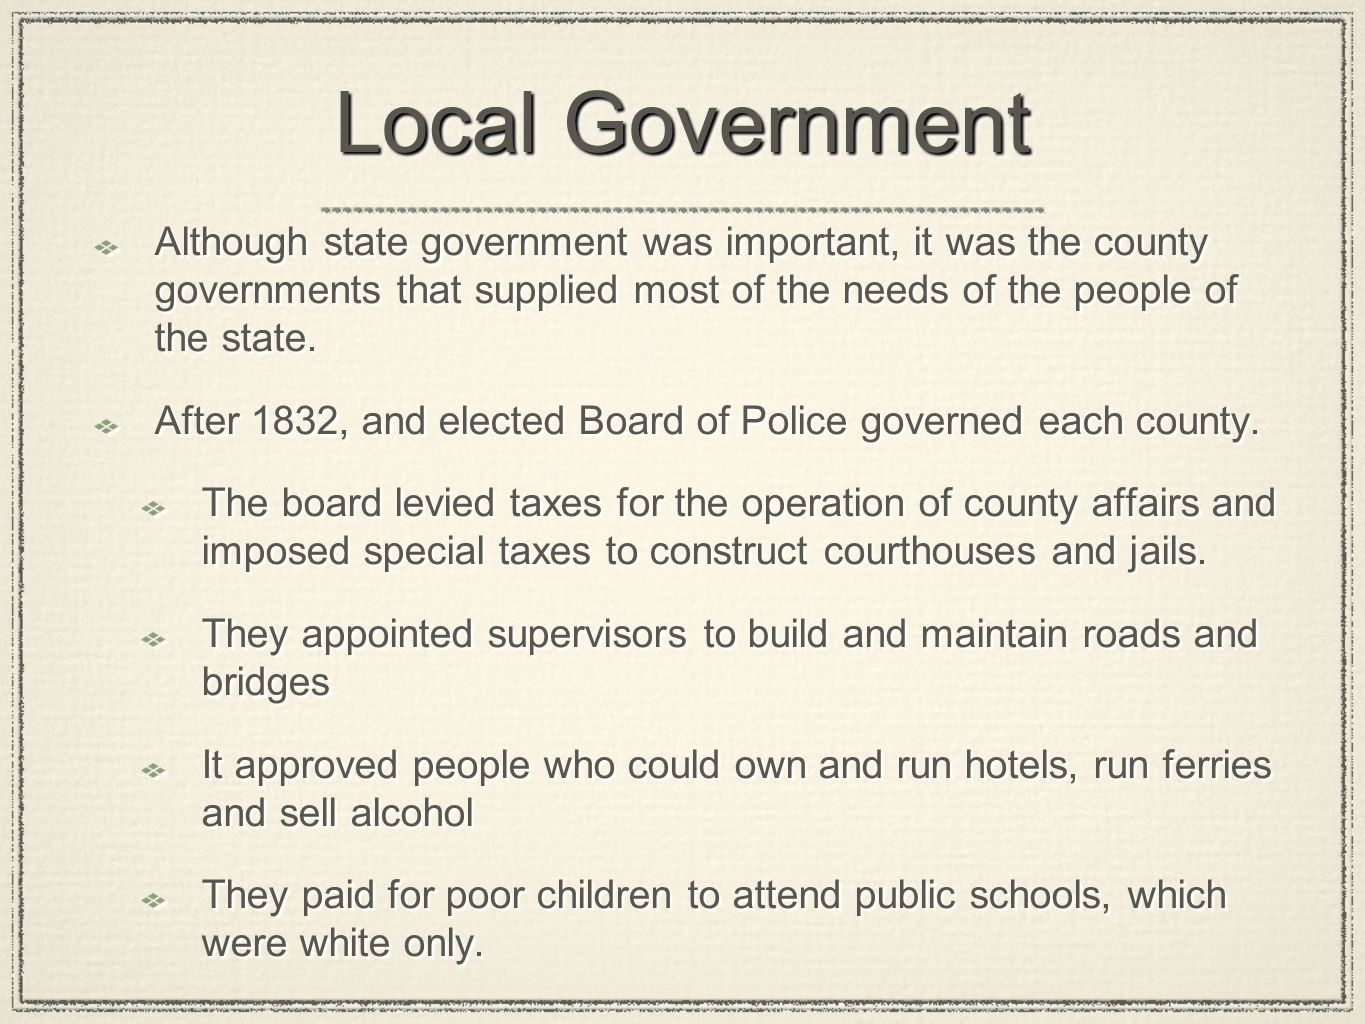 Local Government Although state government was important, it was the county governments that supplied most of the needs of the people of the state.